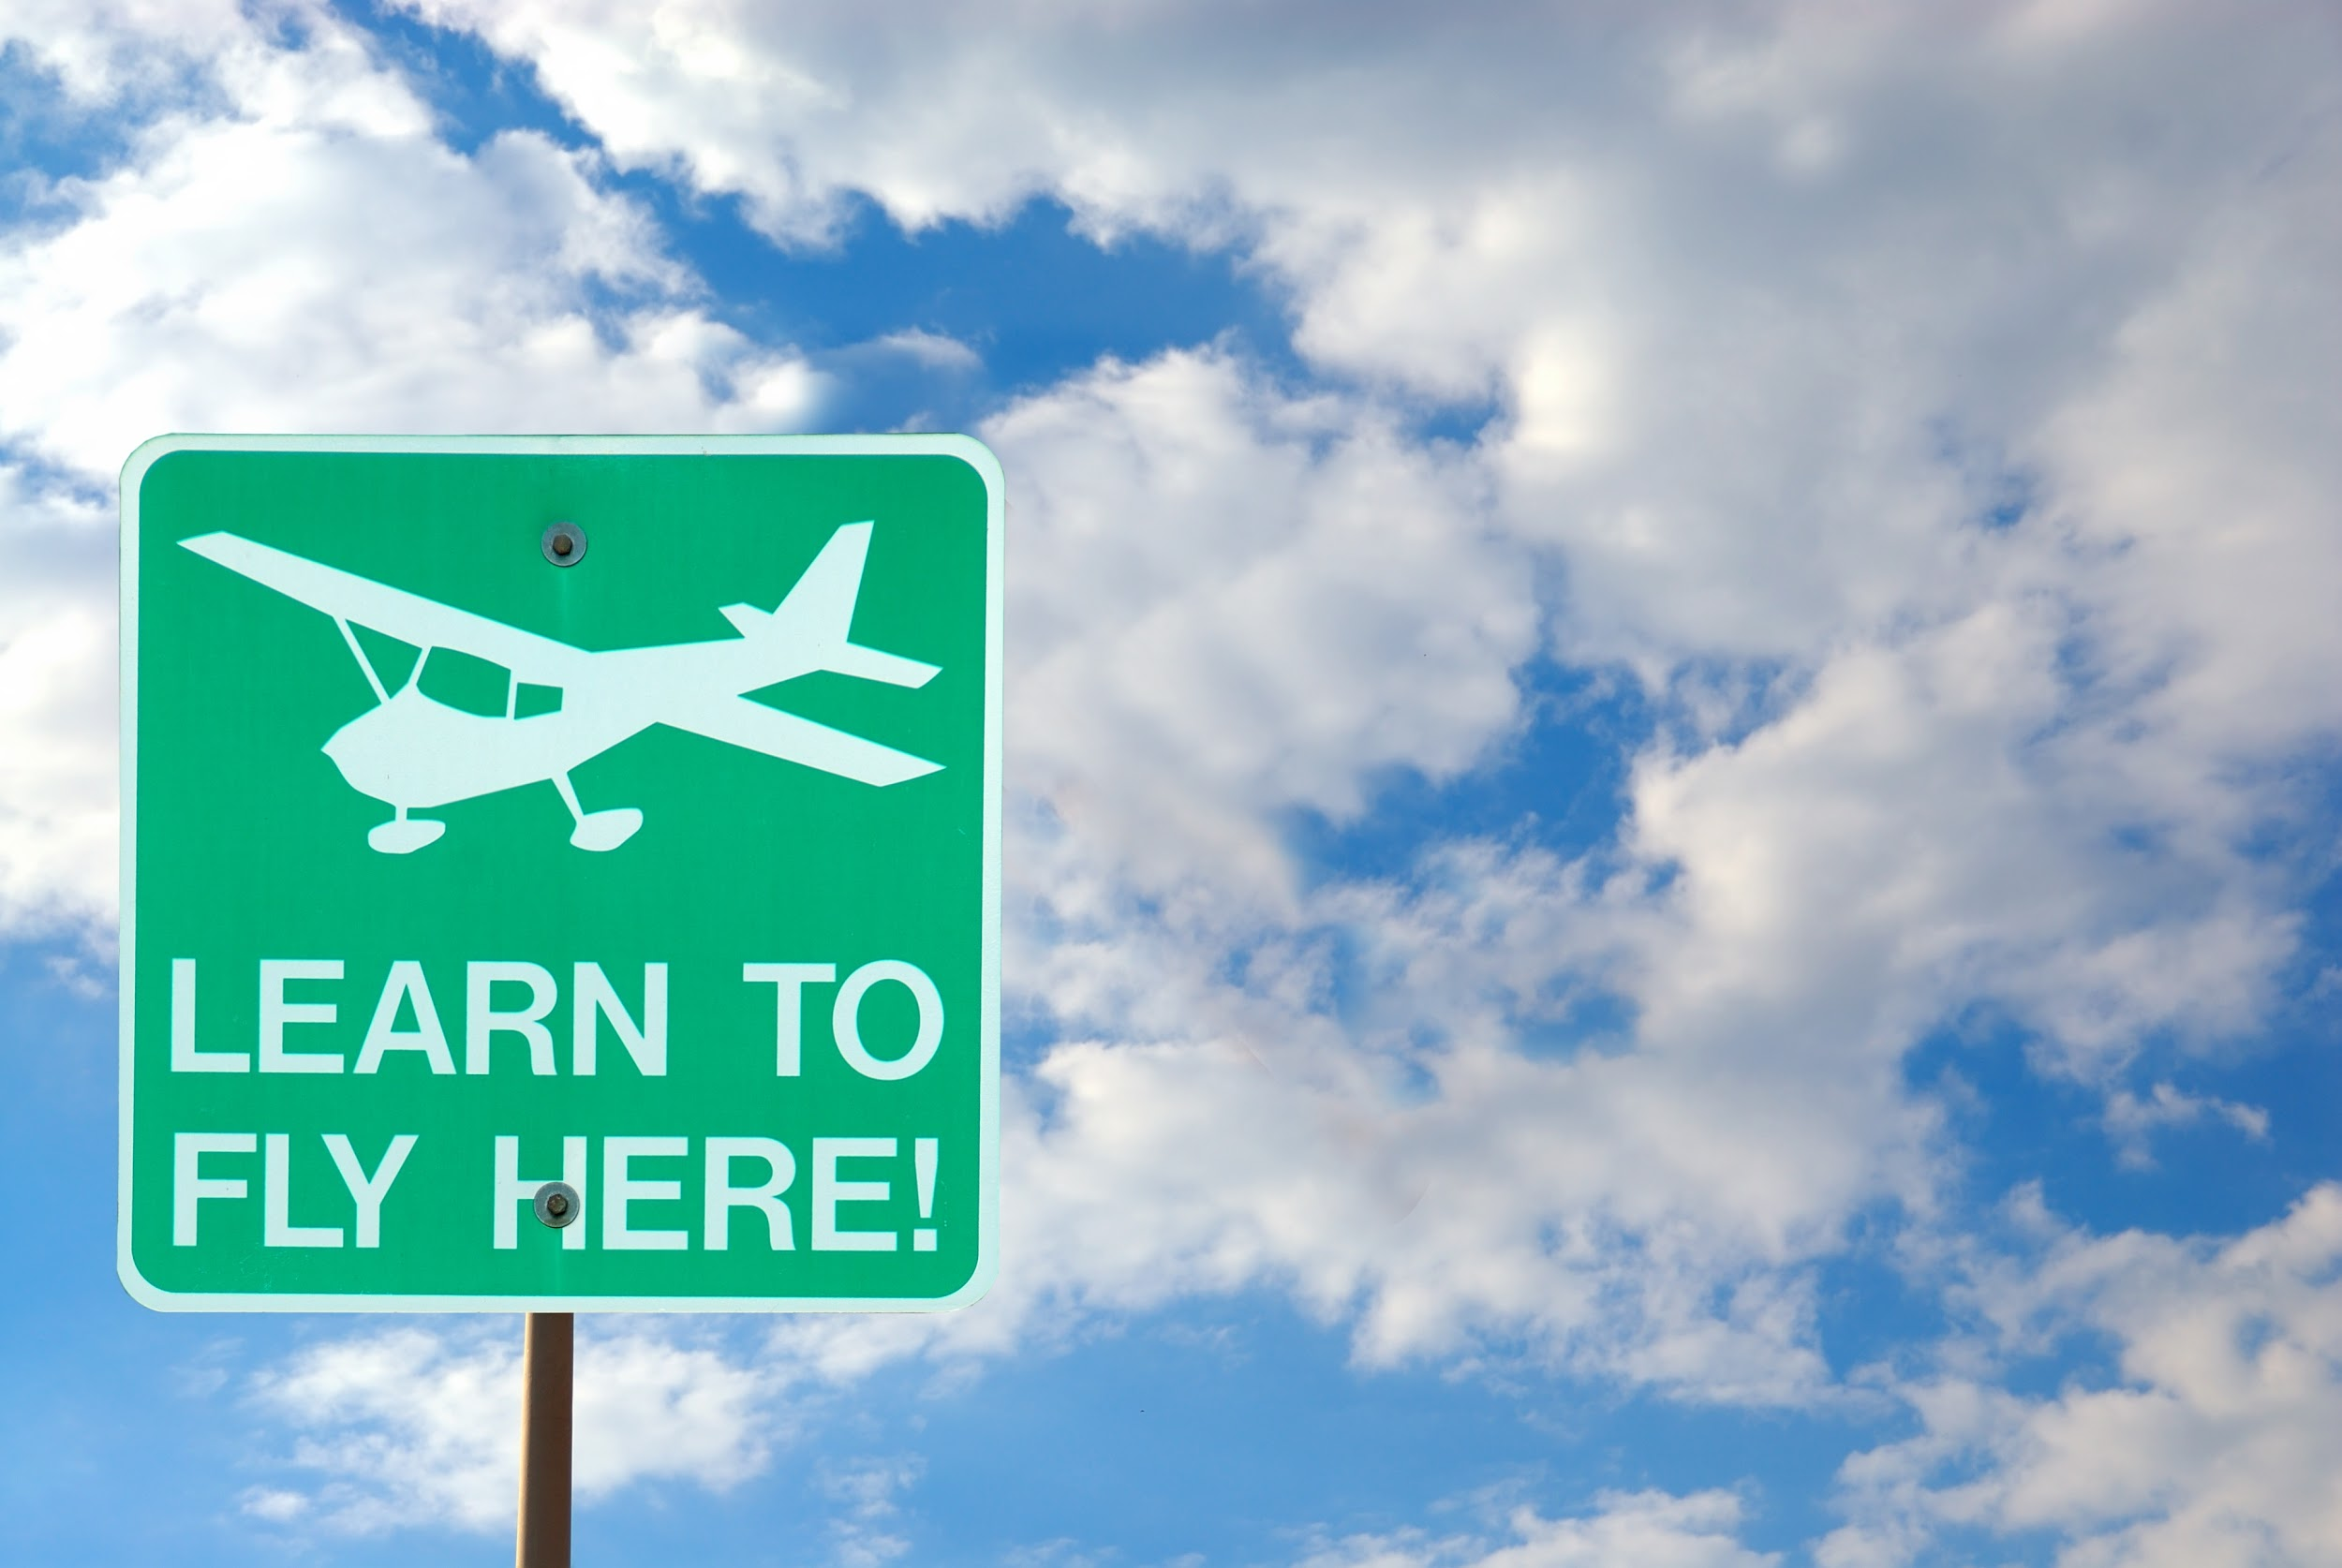 Airport Sign - Learn To Fly Here